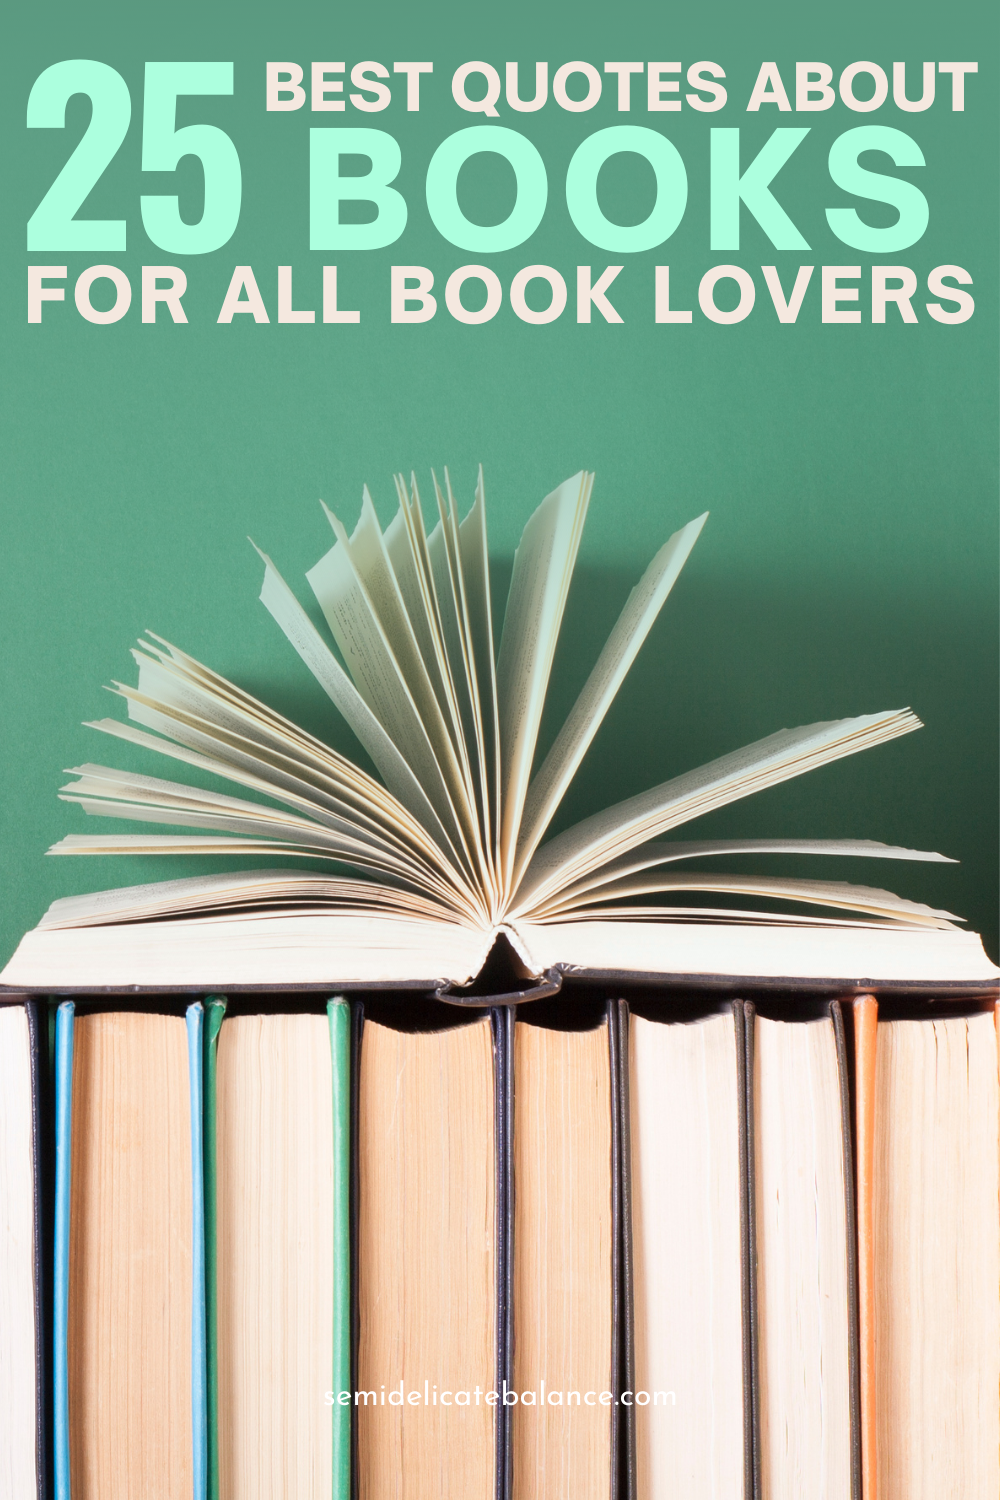 Brilliant Quotes About Books - Best Quotes About Reading #books #quotes